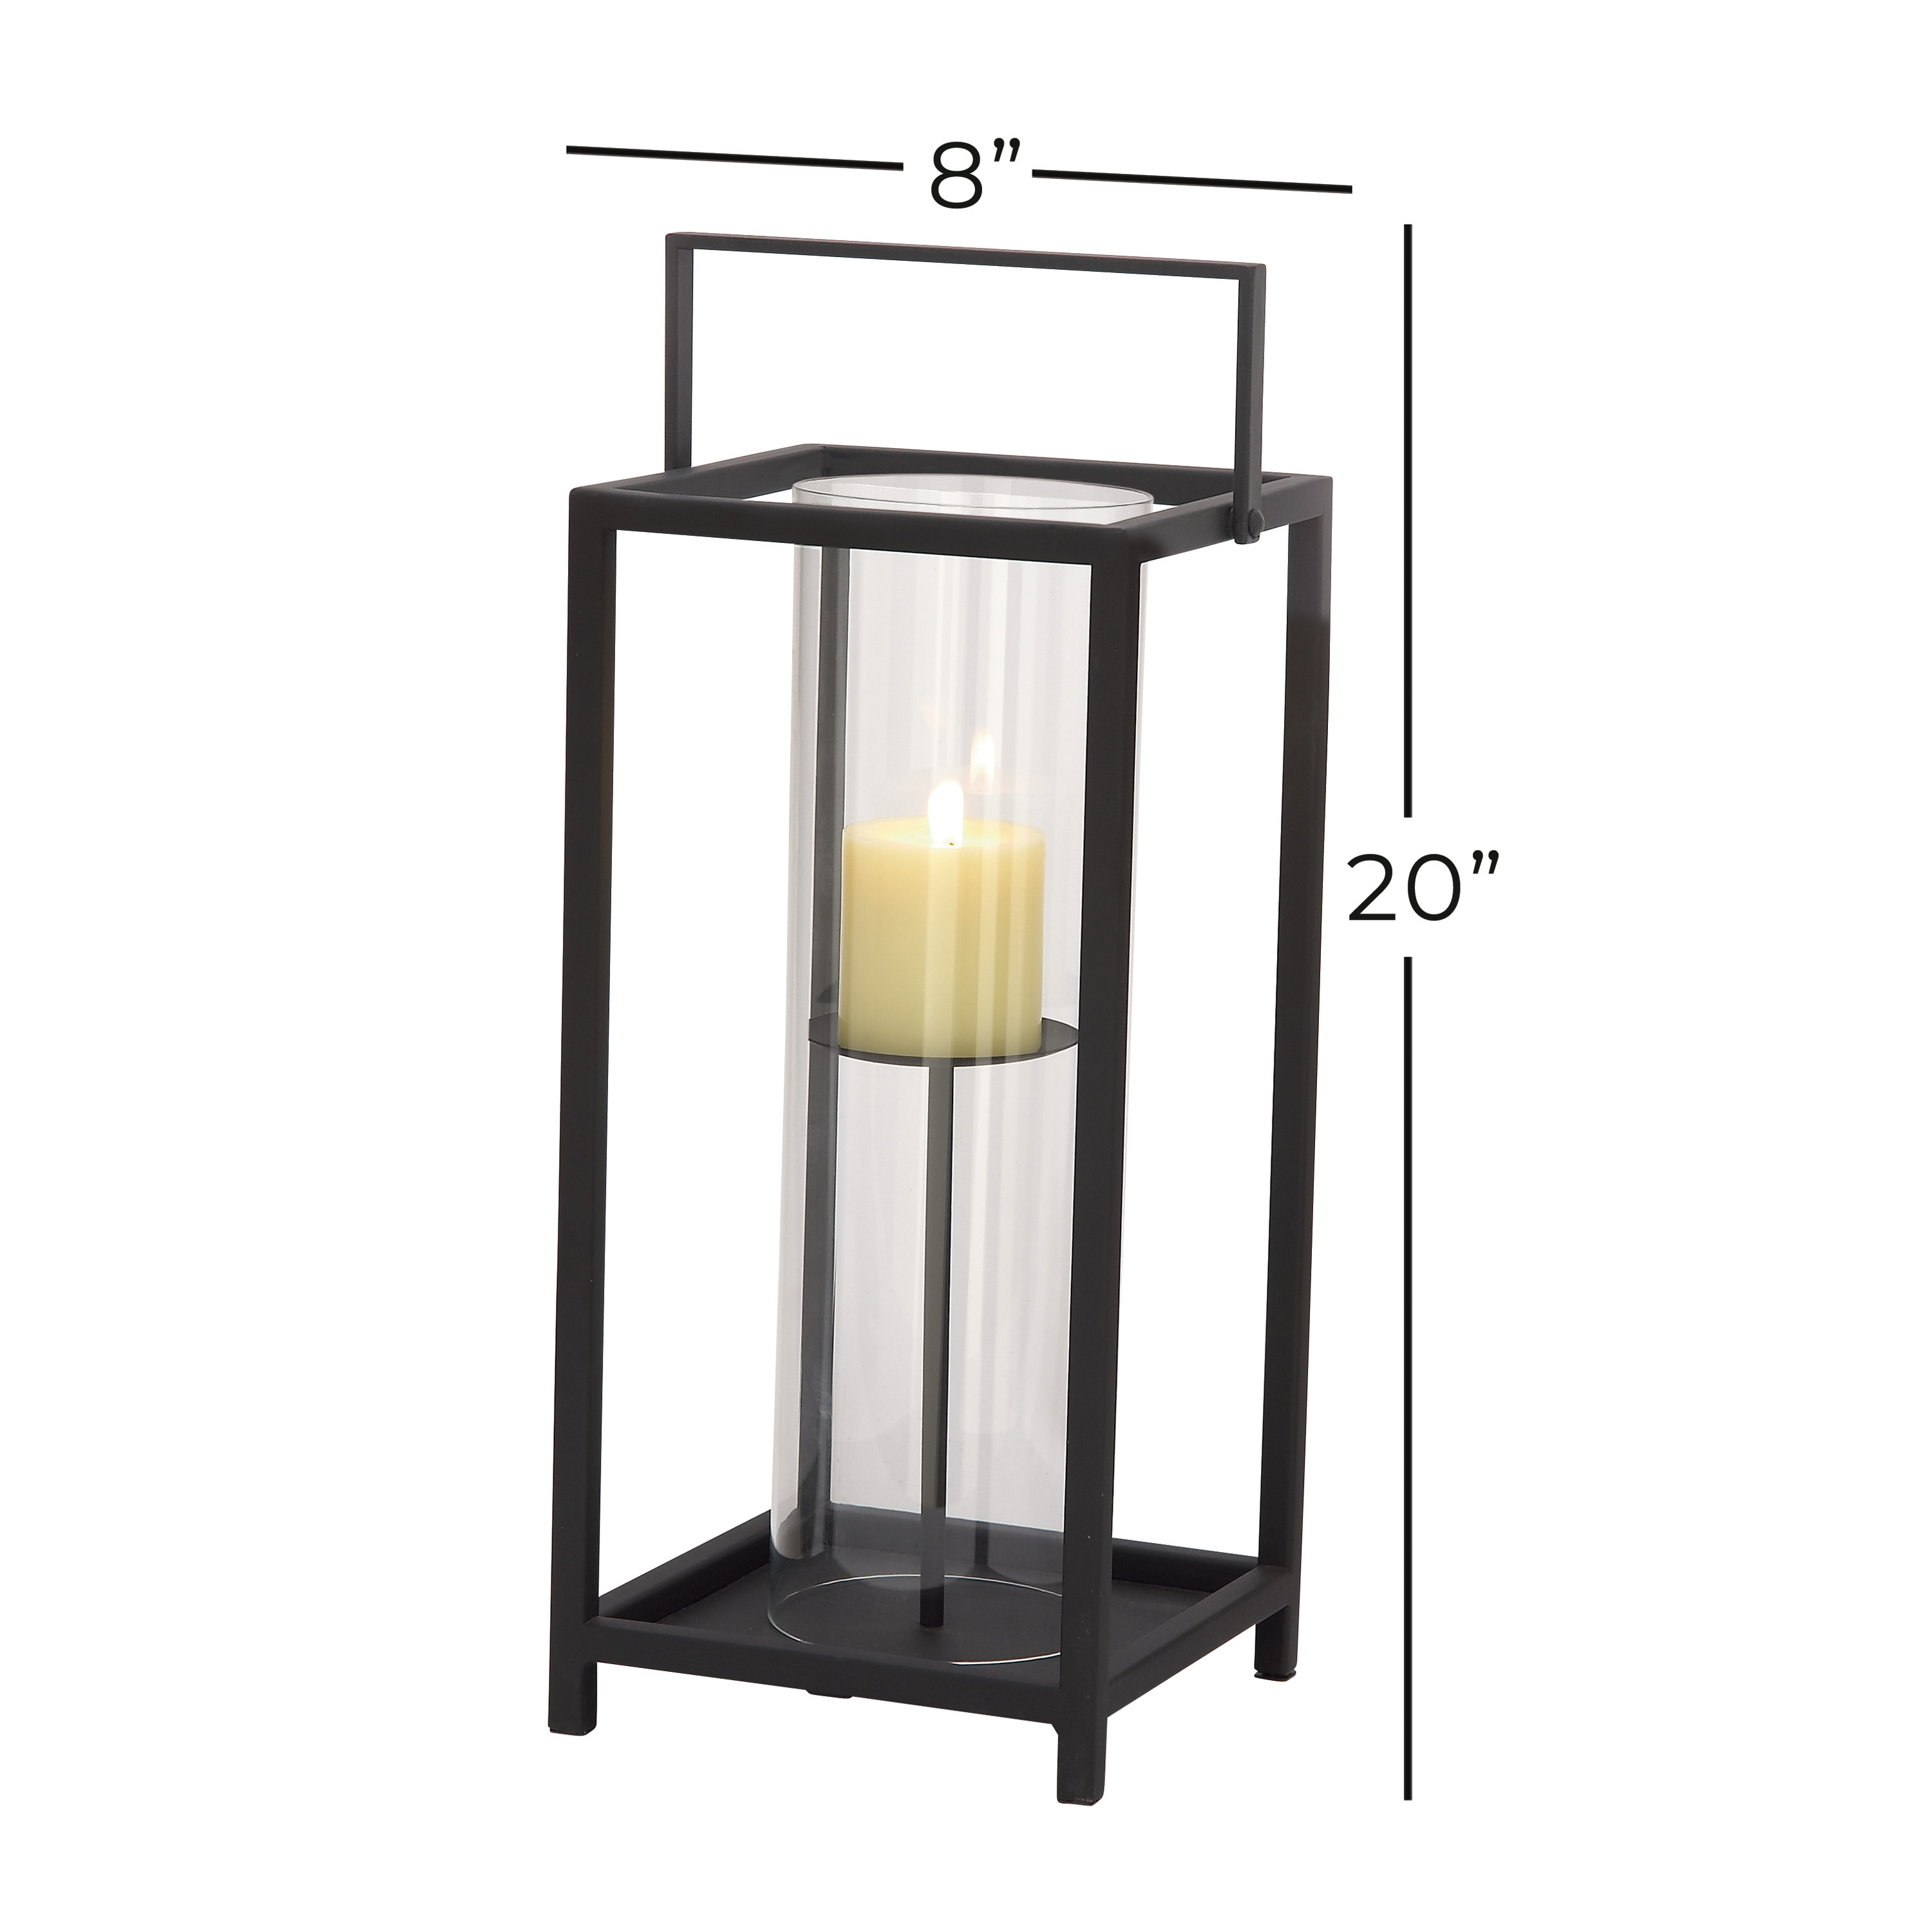 Picture of: Decmode 44539 Large Rectangle Contemporary Iron And Glass Candle Holder In Black Finish W Metal Handle 8 X20 Walmart Com Walmart Com